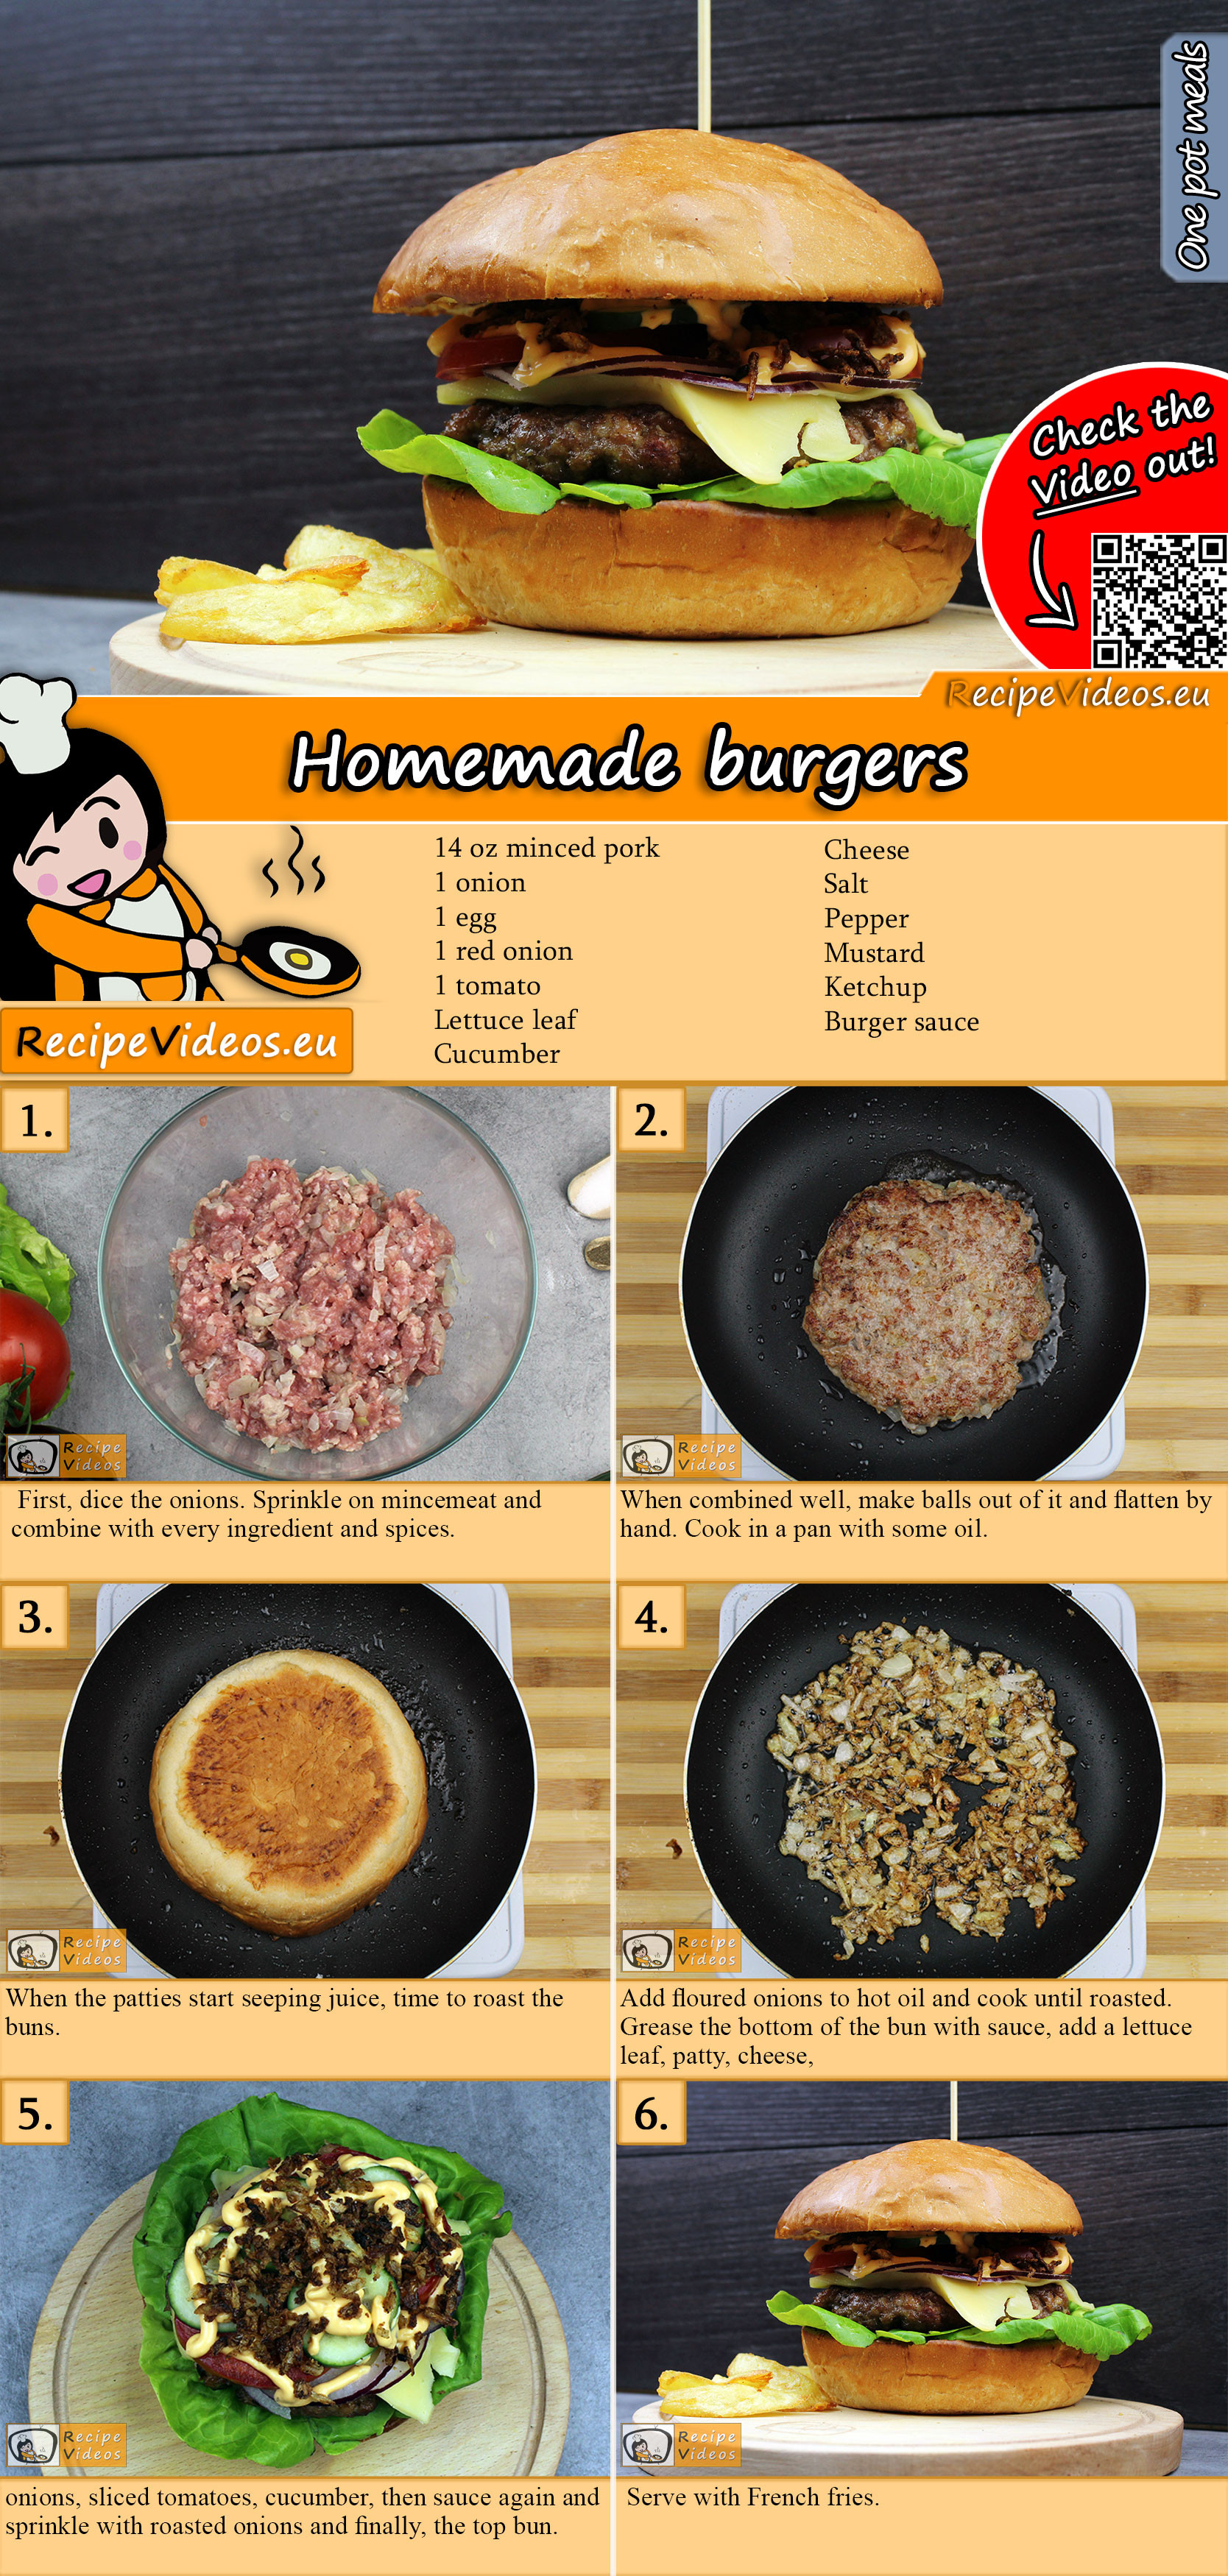 Homemade burgers recipe with video